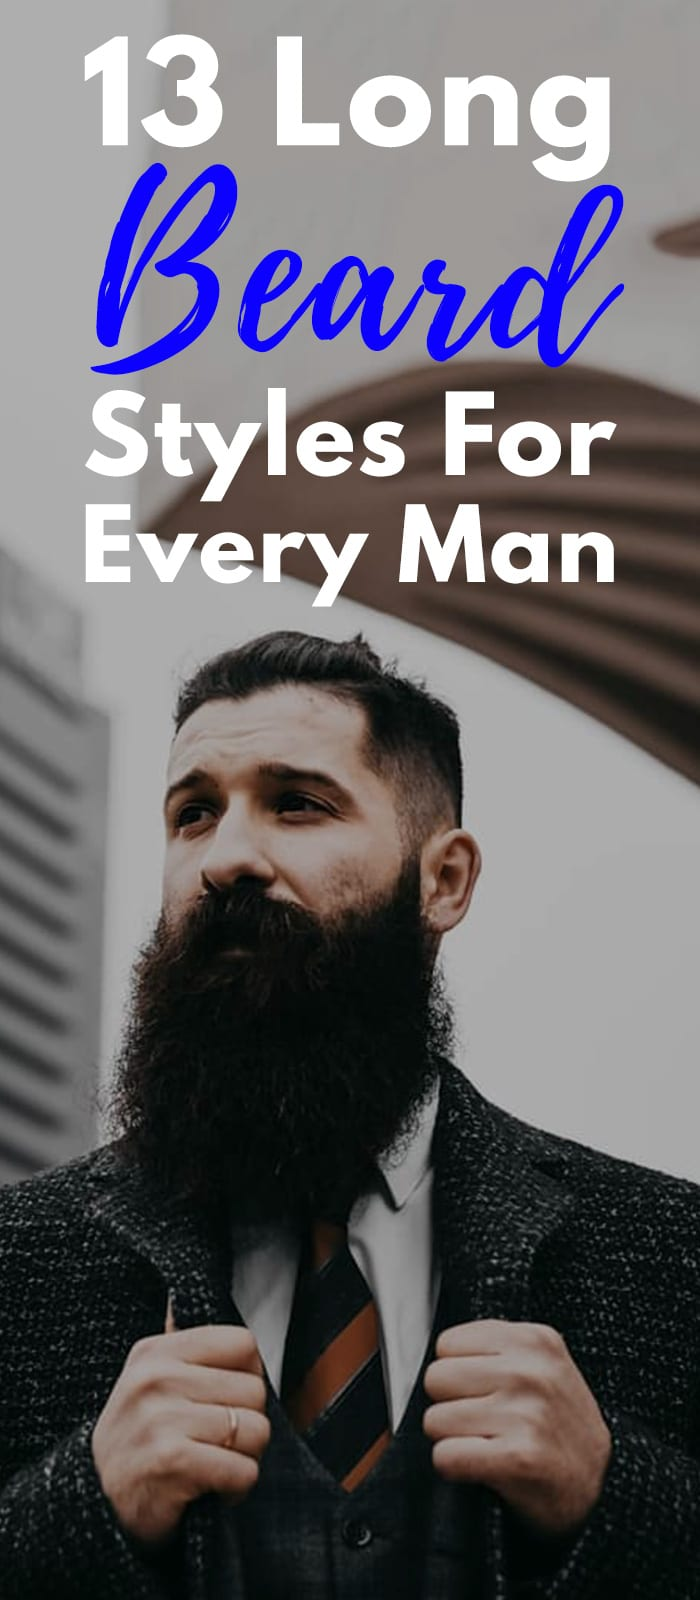 13 Long Beard Styles For Every Man